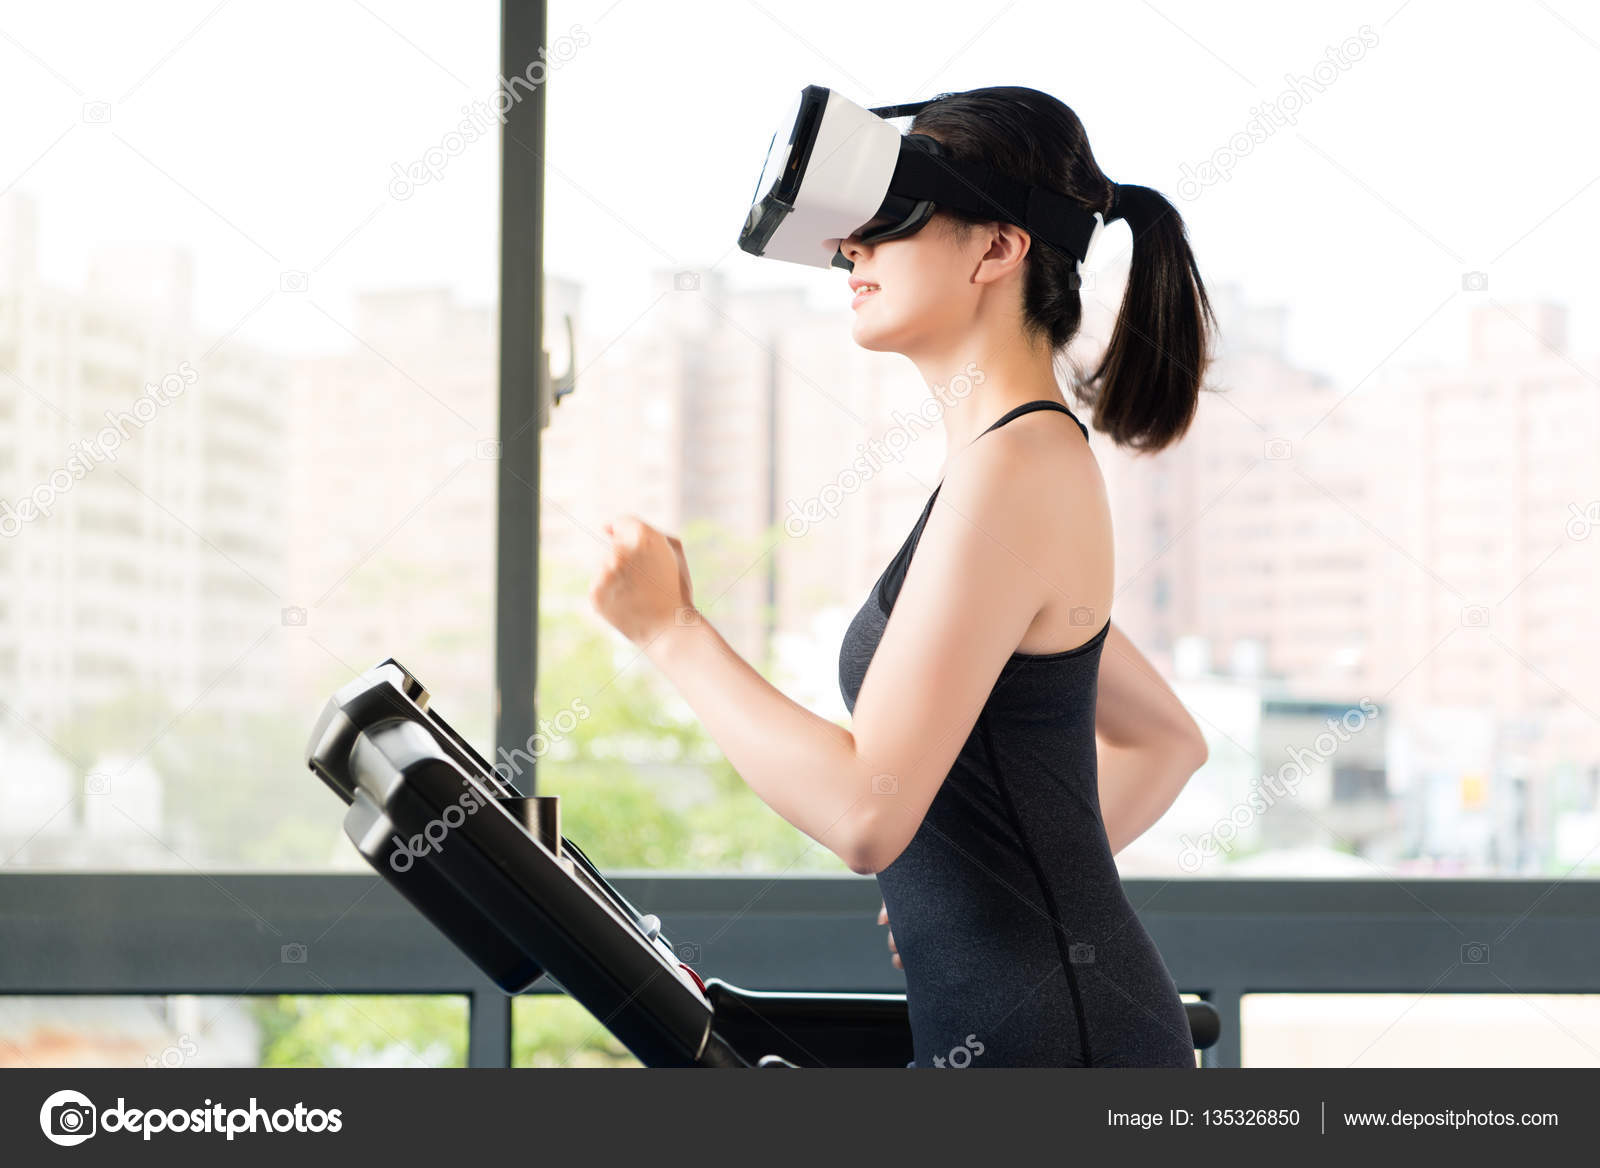 beauty asian woman running treadmill by VR headset glasses — Stock